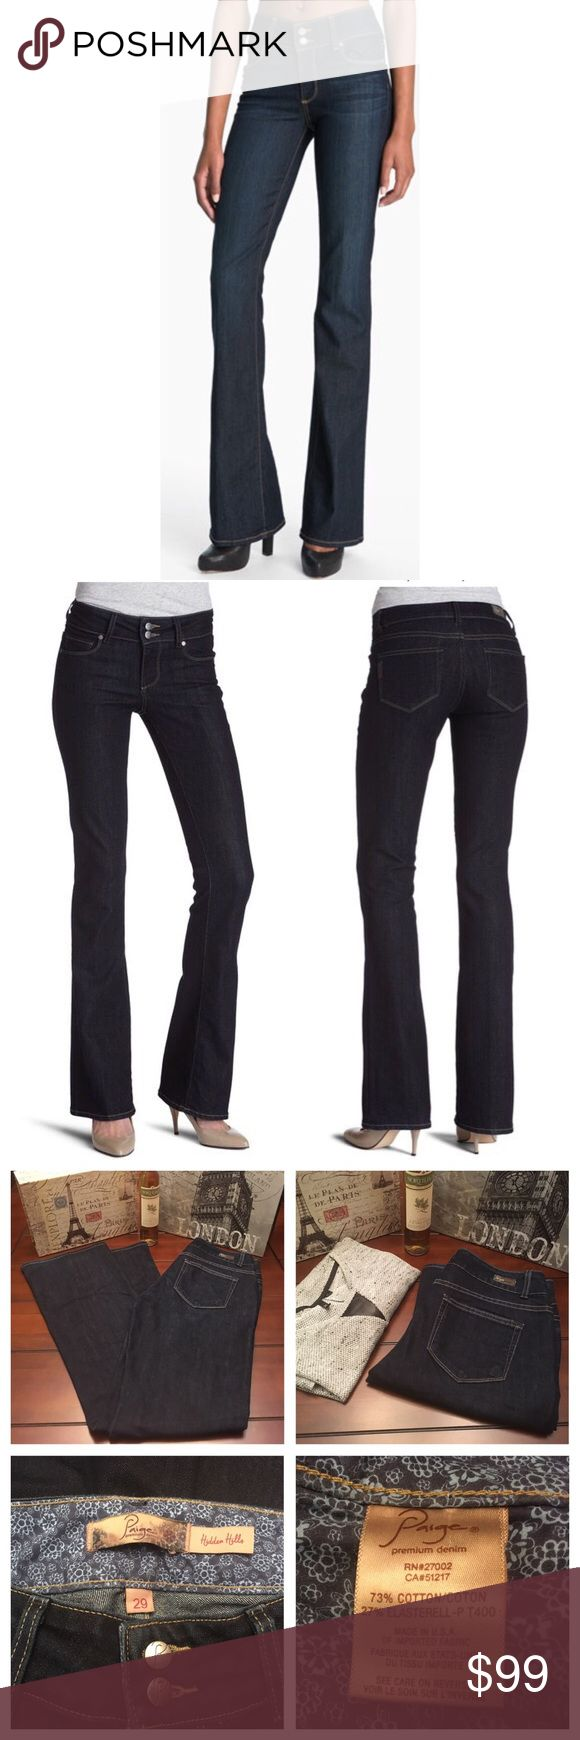 Paige Jeans- Hidden Hills, Size 29; Inseam 32.5 Paige Jeans- Hidden Hills in Dusk, Size 29; Inseam 32.5  Great condition with minor wear to hem edges. These are in the dark Dusk wash. These have a wide waistband and high rise. Inseam measures 32.25 inches, leg opening is 9.75 inches, rise measures 10 inches. Paige Jeans Jeans